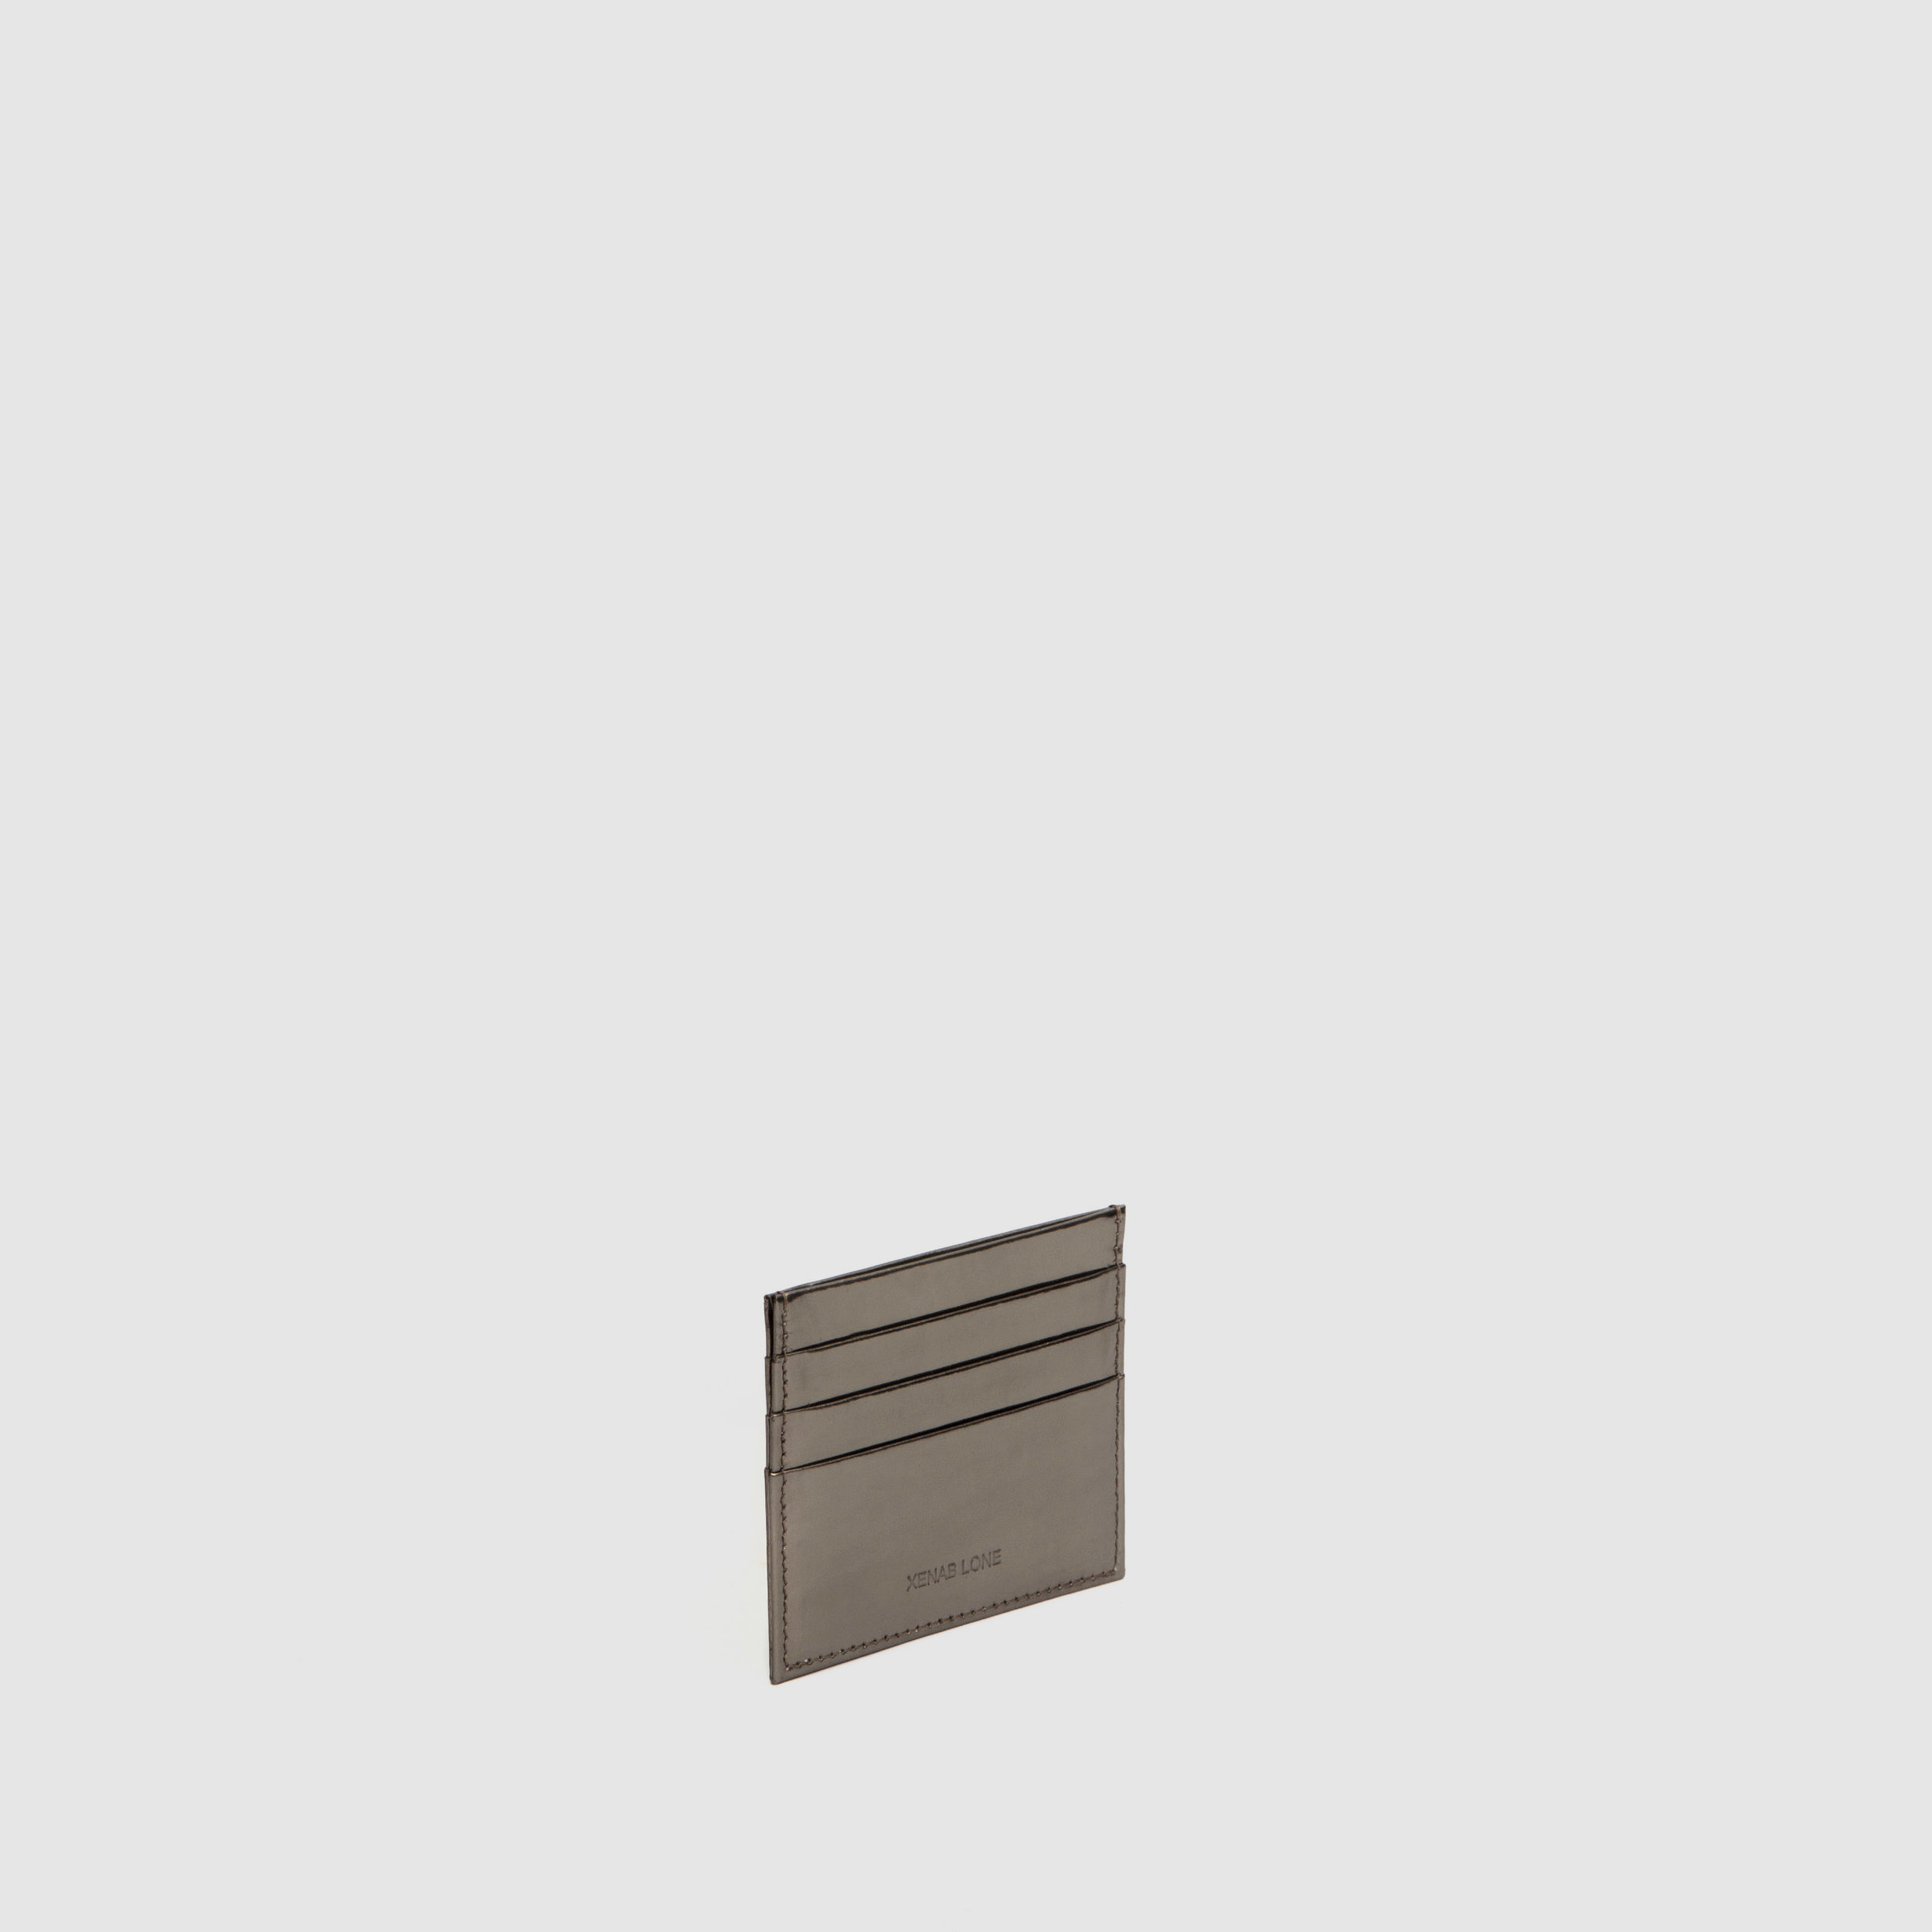 Wallets&Pouches_0003s_0001s_0001_Layer 0.jpg